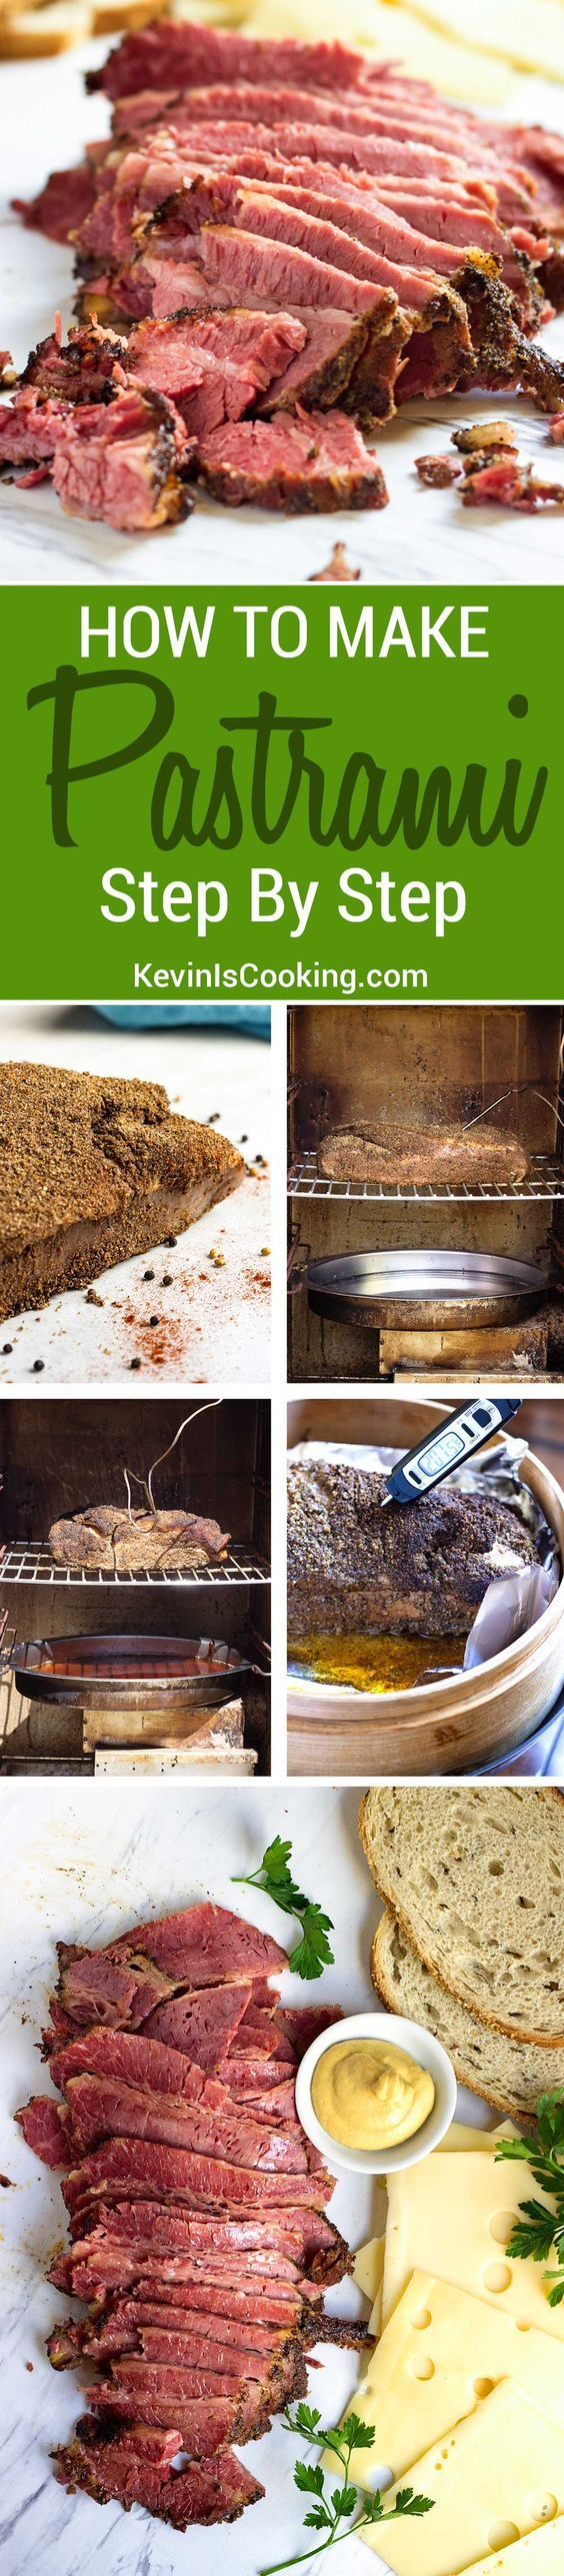 This is a fantastic step by step recipe to make homemade pastrami! Fantastic…